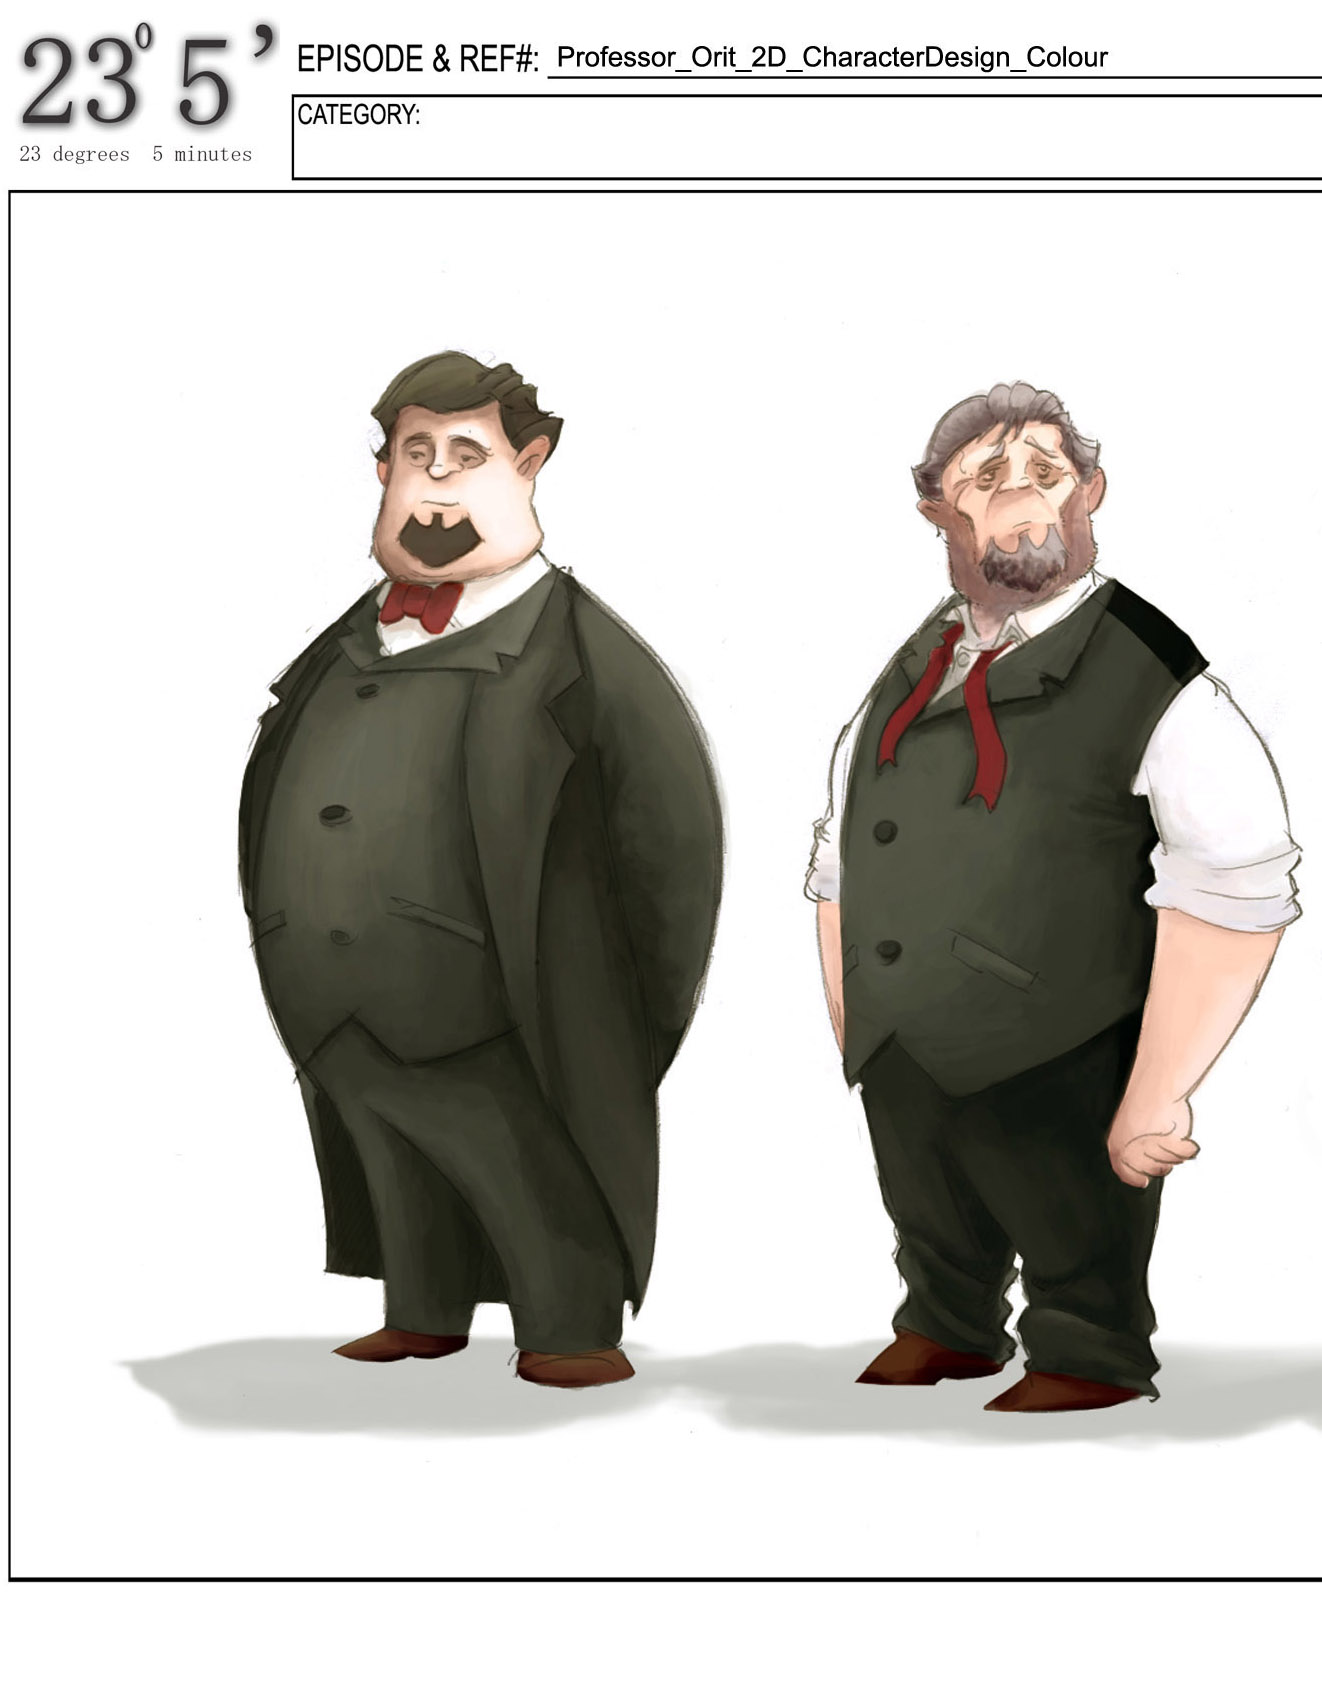 Professor_Orit_2D_CharacterDesign_Colour